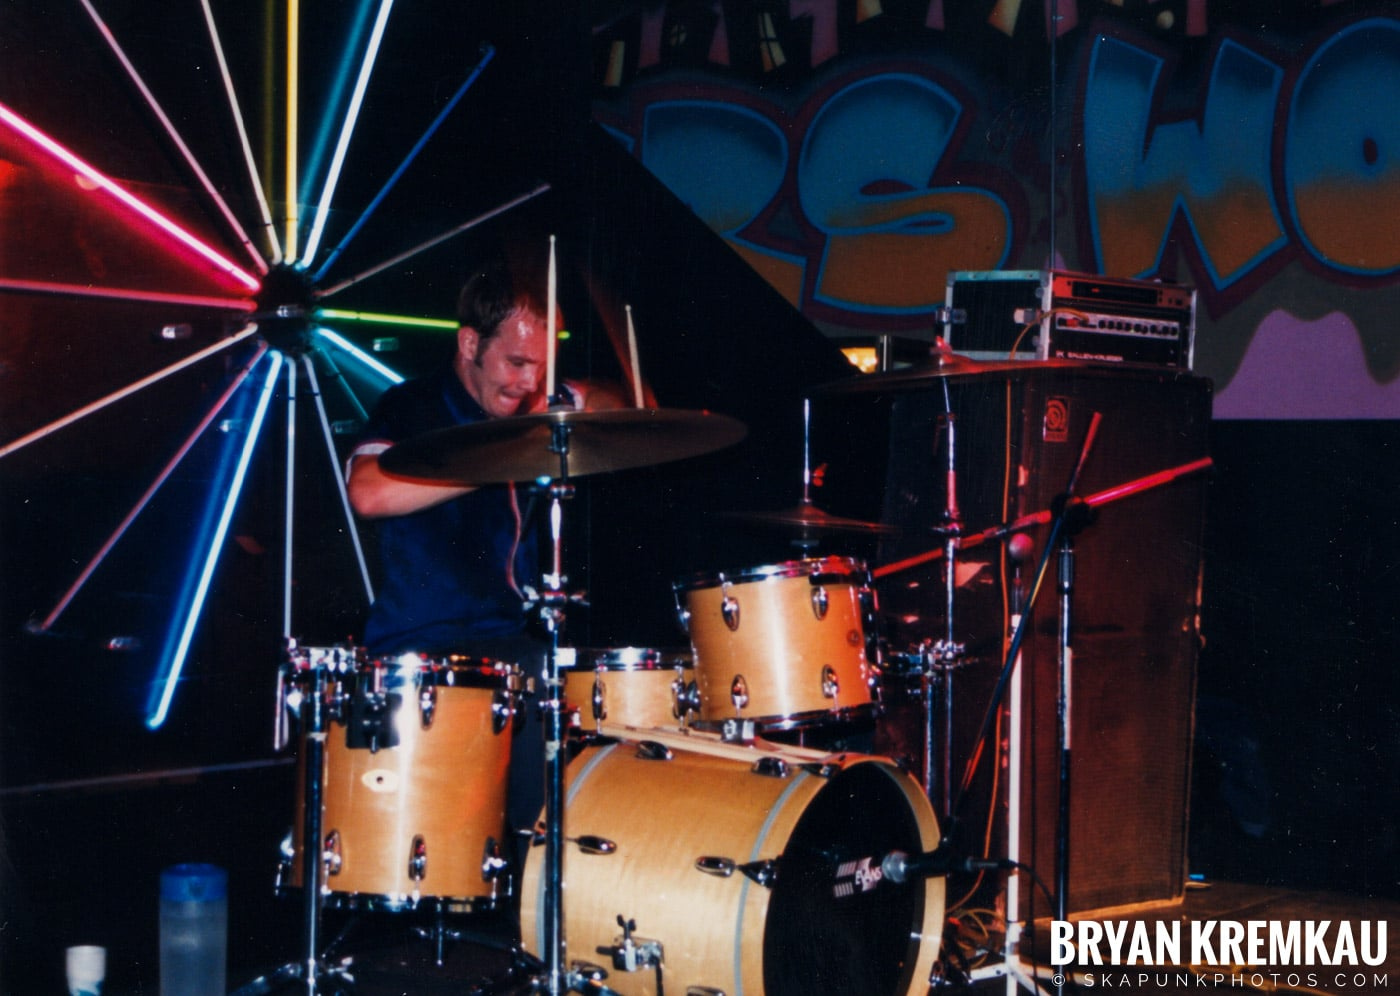 Animal Chin @ Skater's World, Wayne, NJ - 7.8.98 (4)